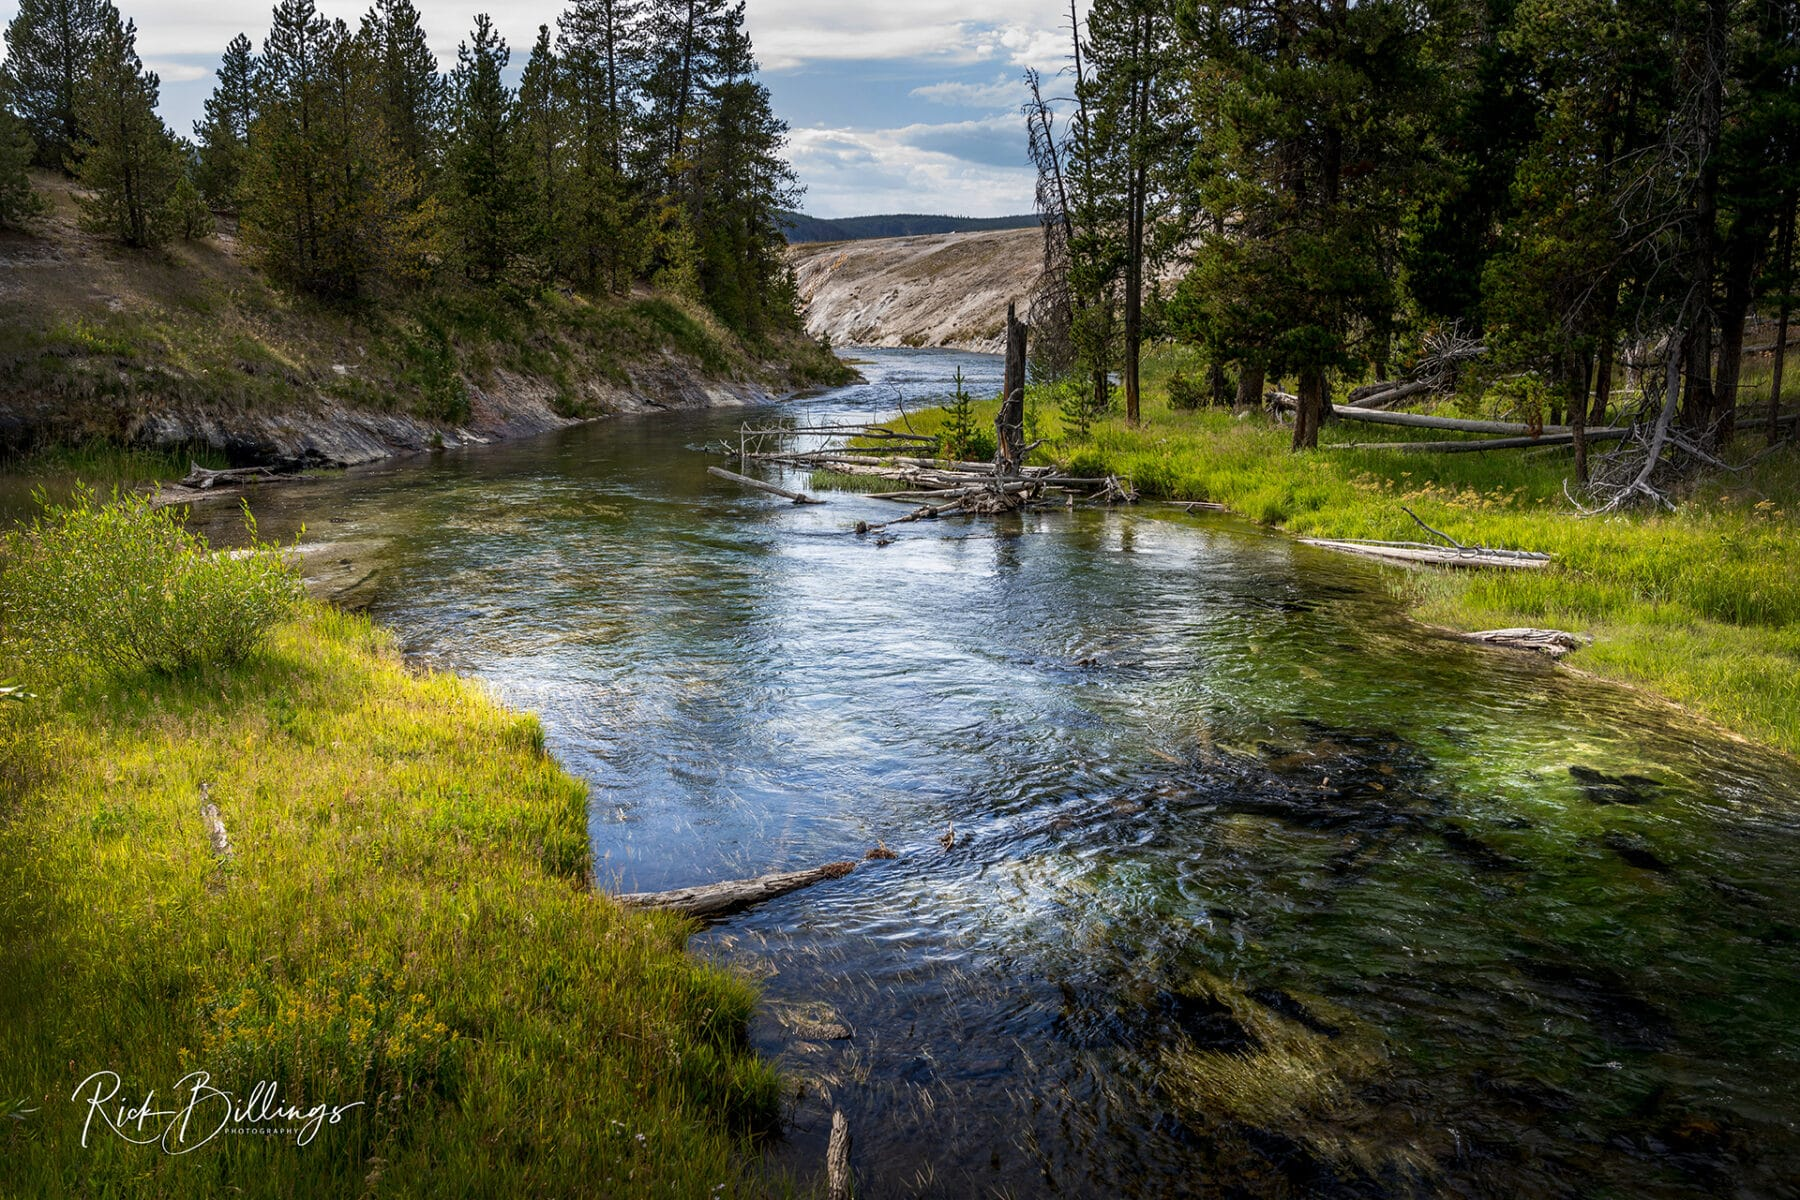 No 1054 20190820 Yellowstone River